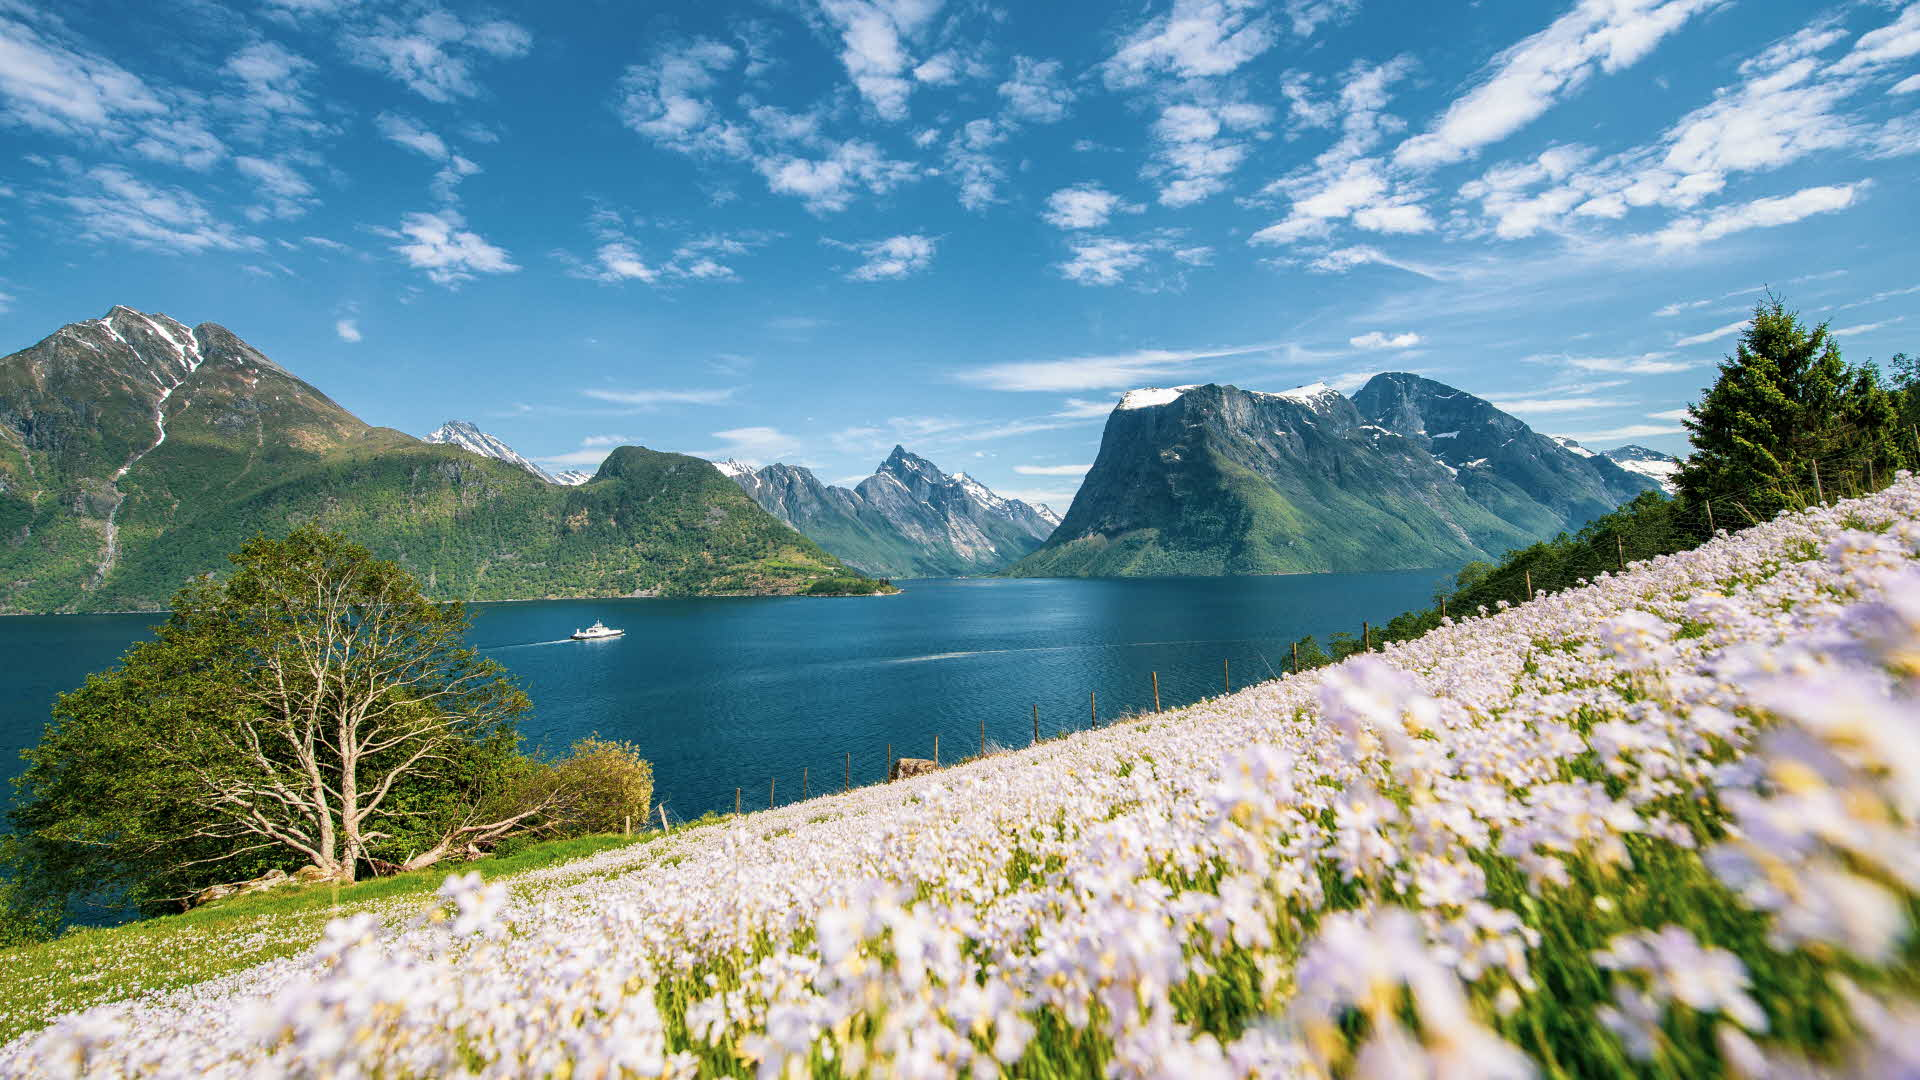 Wild rugged landscape with high snow-capped mountains and lush green hills that dive into the green-bluish Hjorundfjord